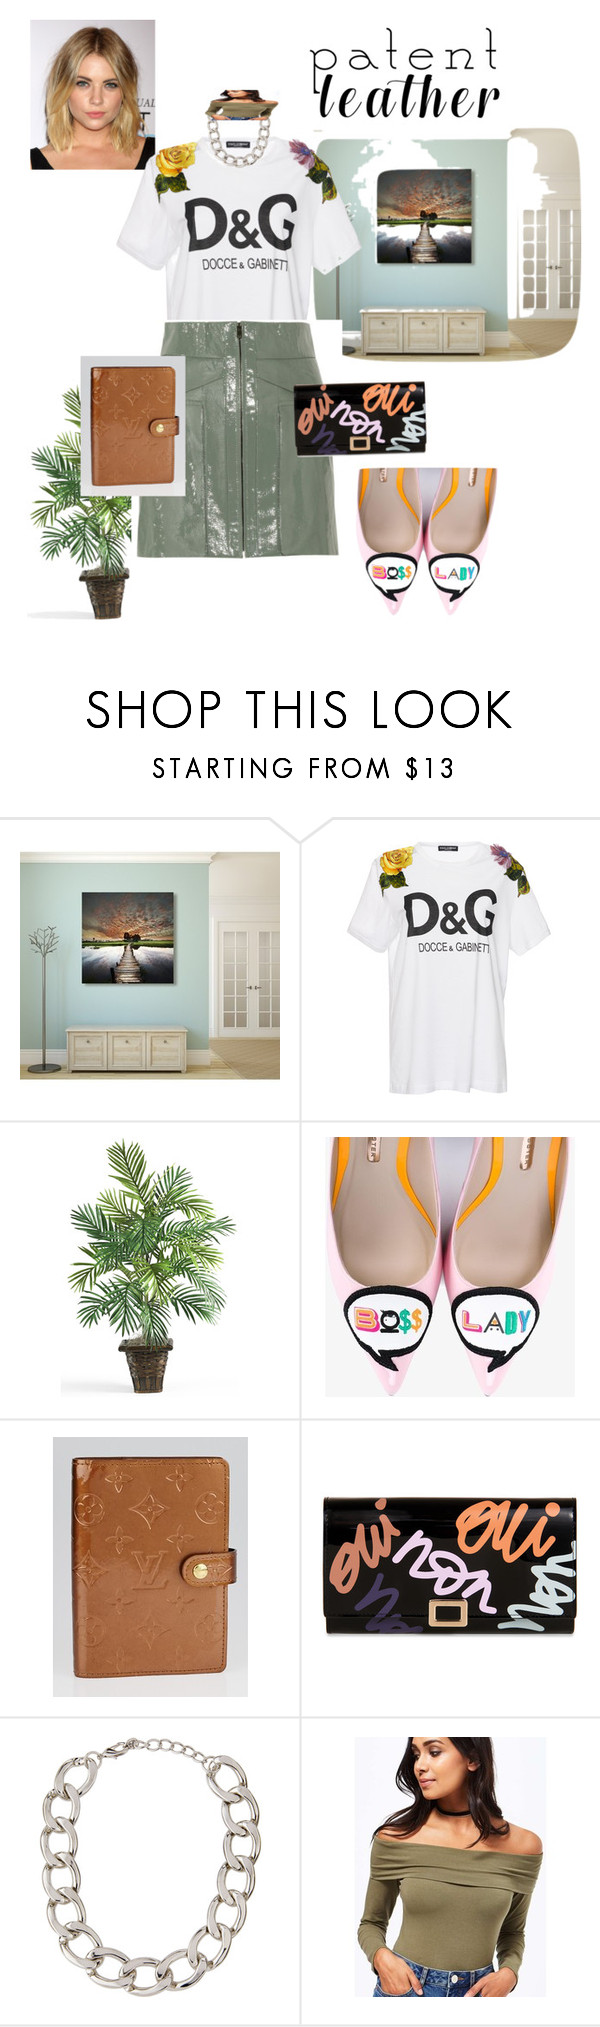 """Young summer CEO"" by meagan-kruz ❤ liked on Polyvore featuring Dolce&Gabbana, Alexander Wang, Sophia Webster, Louis Vuitton, Roger Vivier, Lydell NYC and Miss Selfridge"